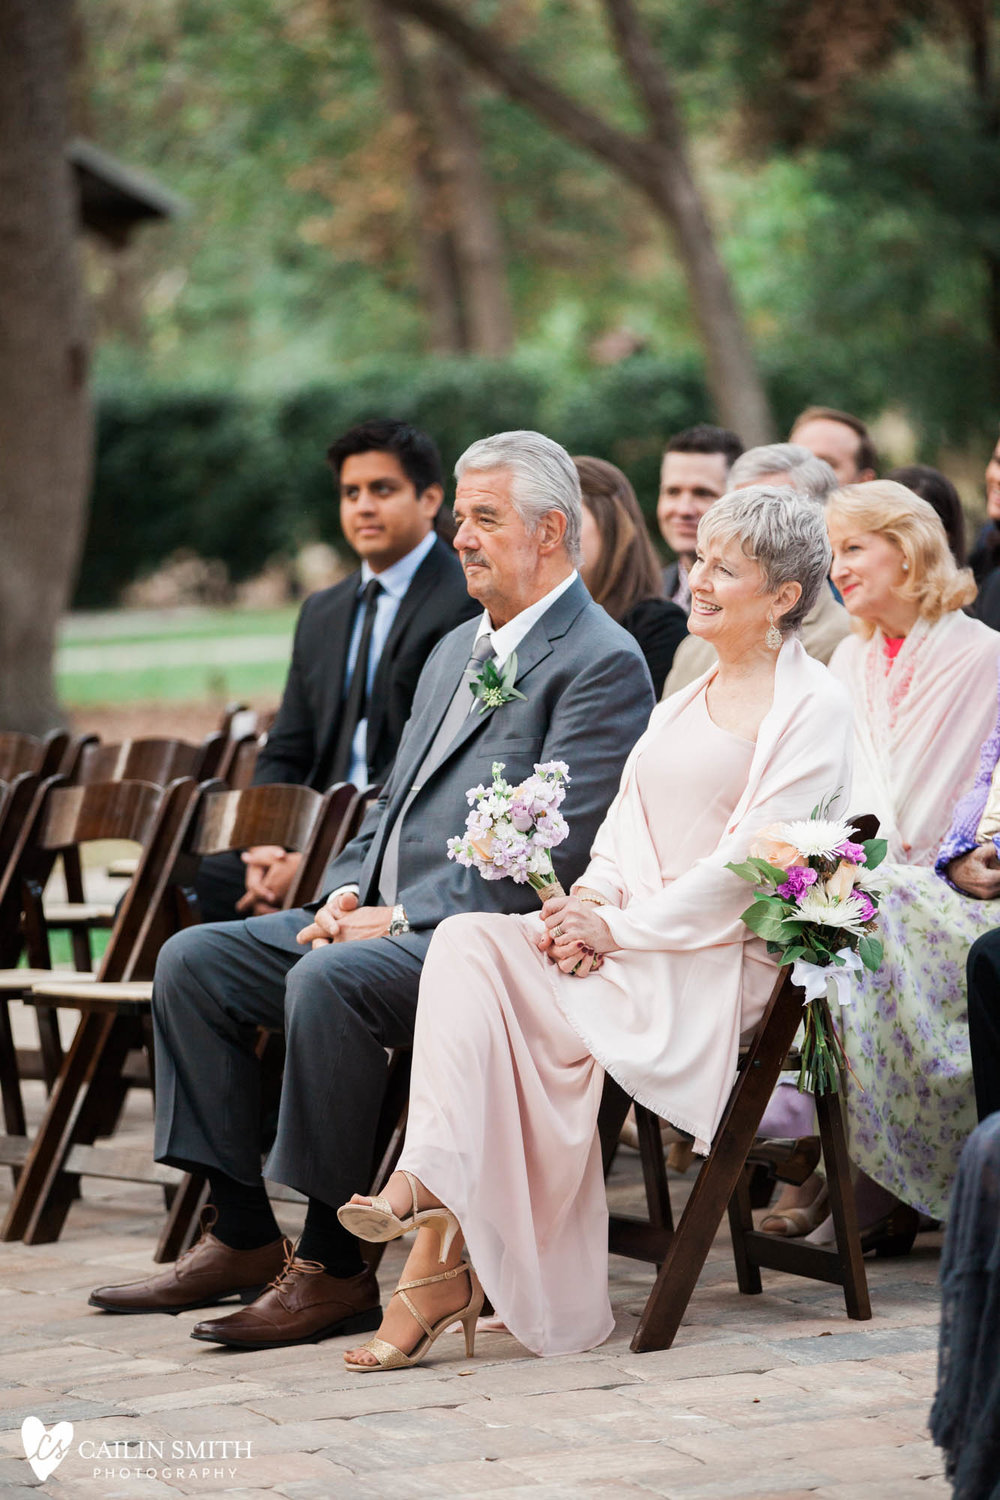 Sylvia_Anthony_Bowing_Oaks_Plantation_Wedding_Photography_0048.jpg